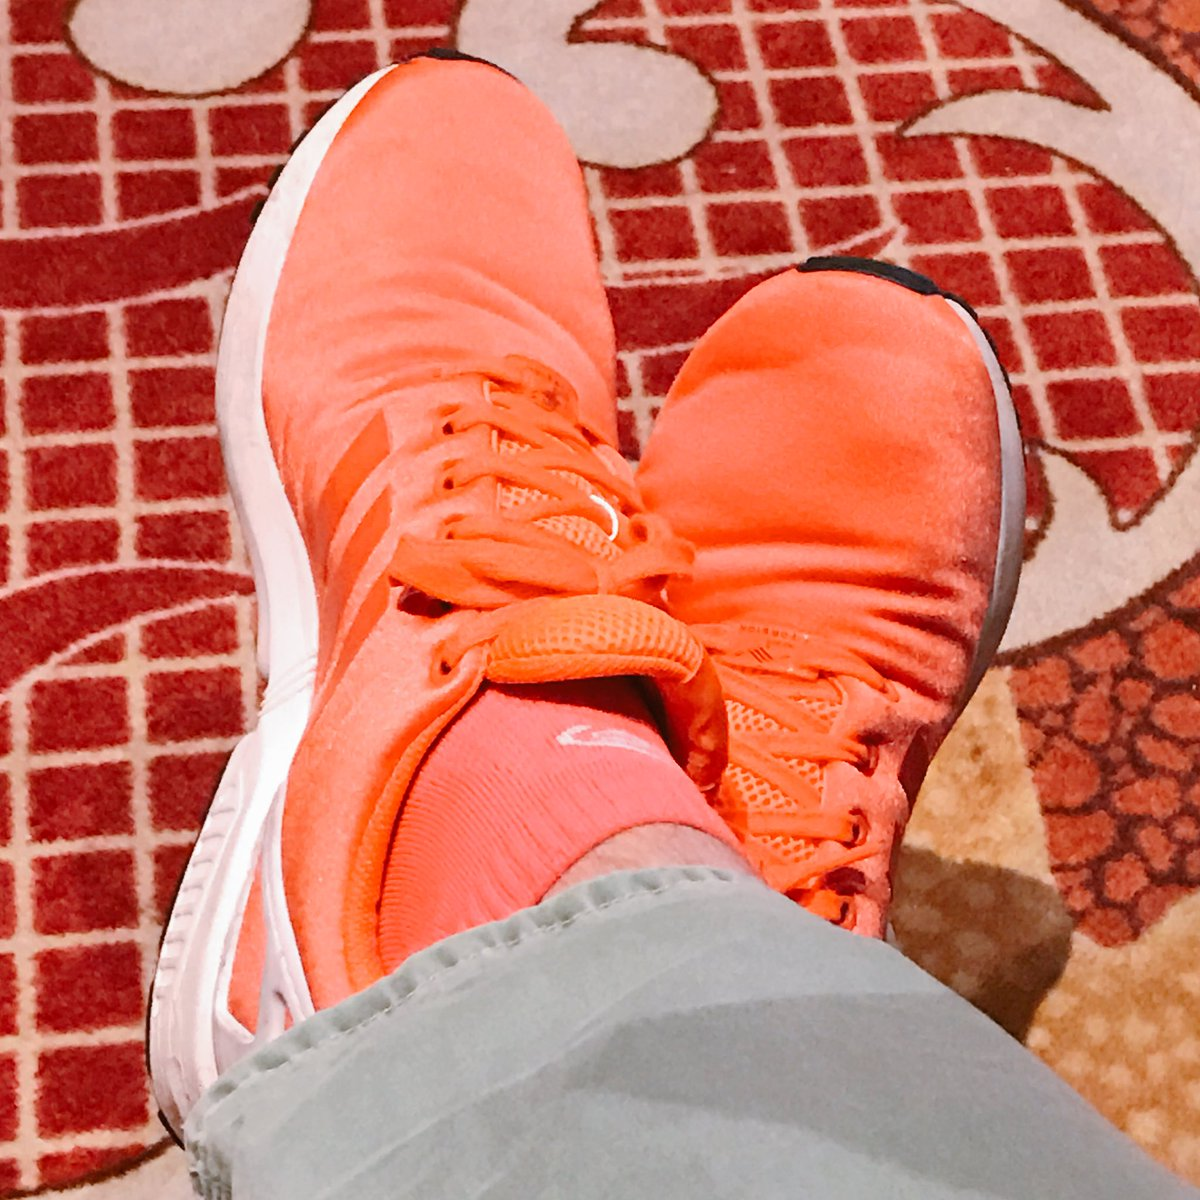 raybogman: #mageshoes ready 4 Day 2 #Magentoimagine https://t.co/j8ispT5Xfq